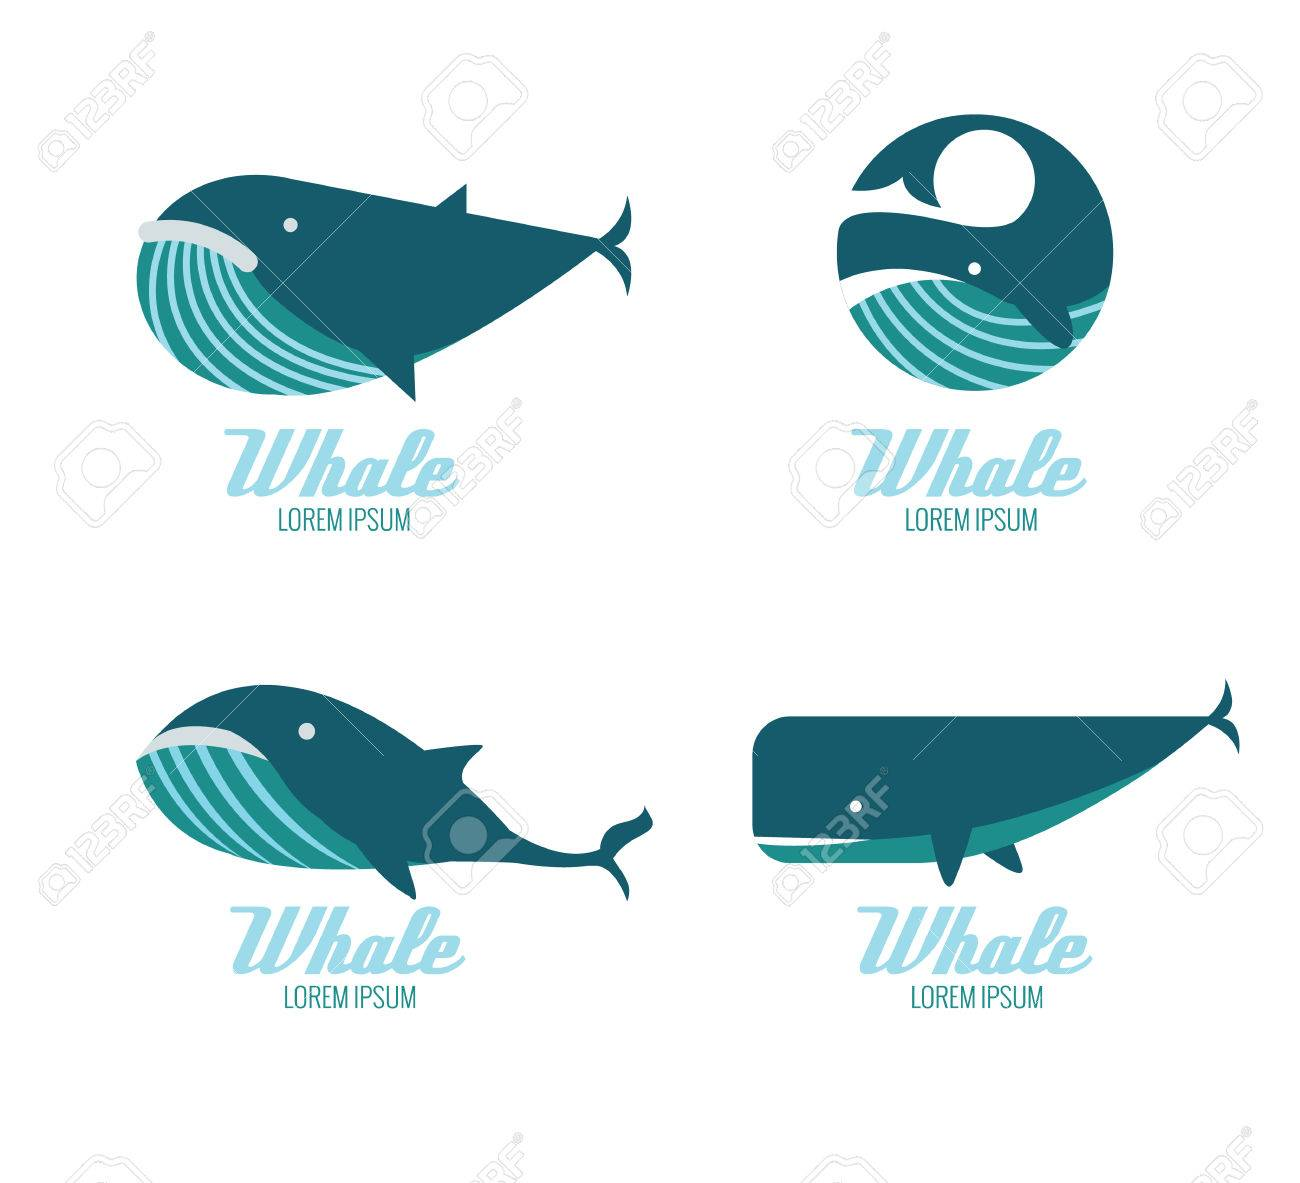 Whales icons. flat design elements. vector illustration - 47600396